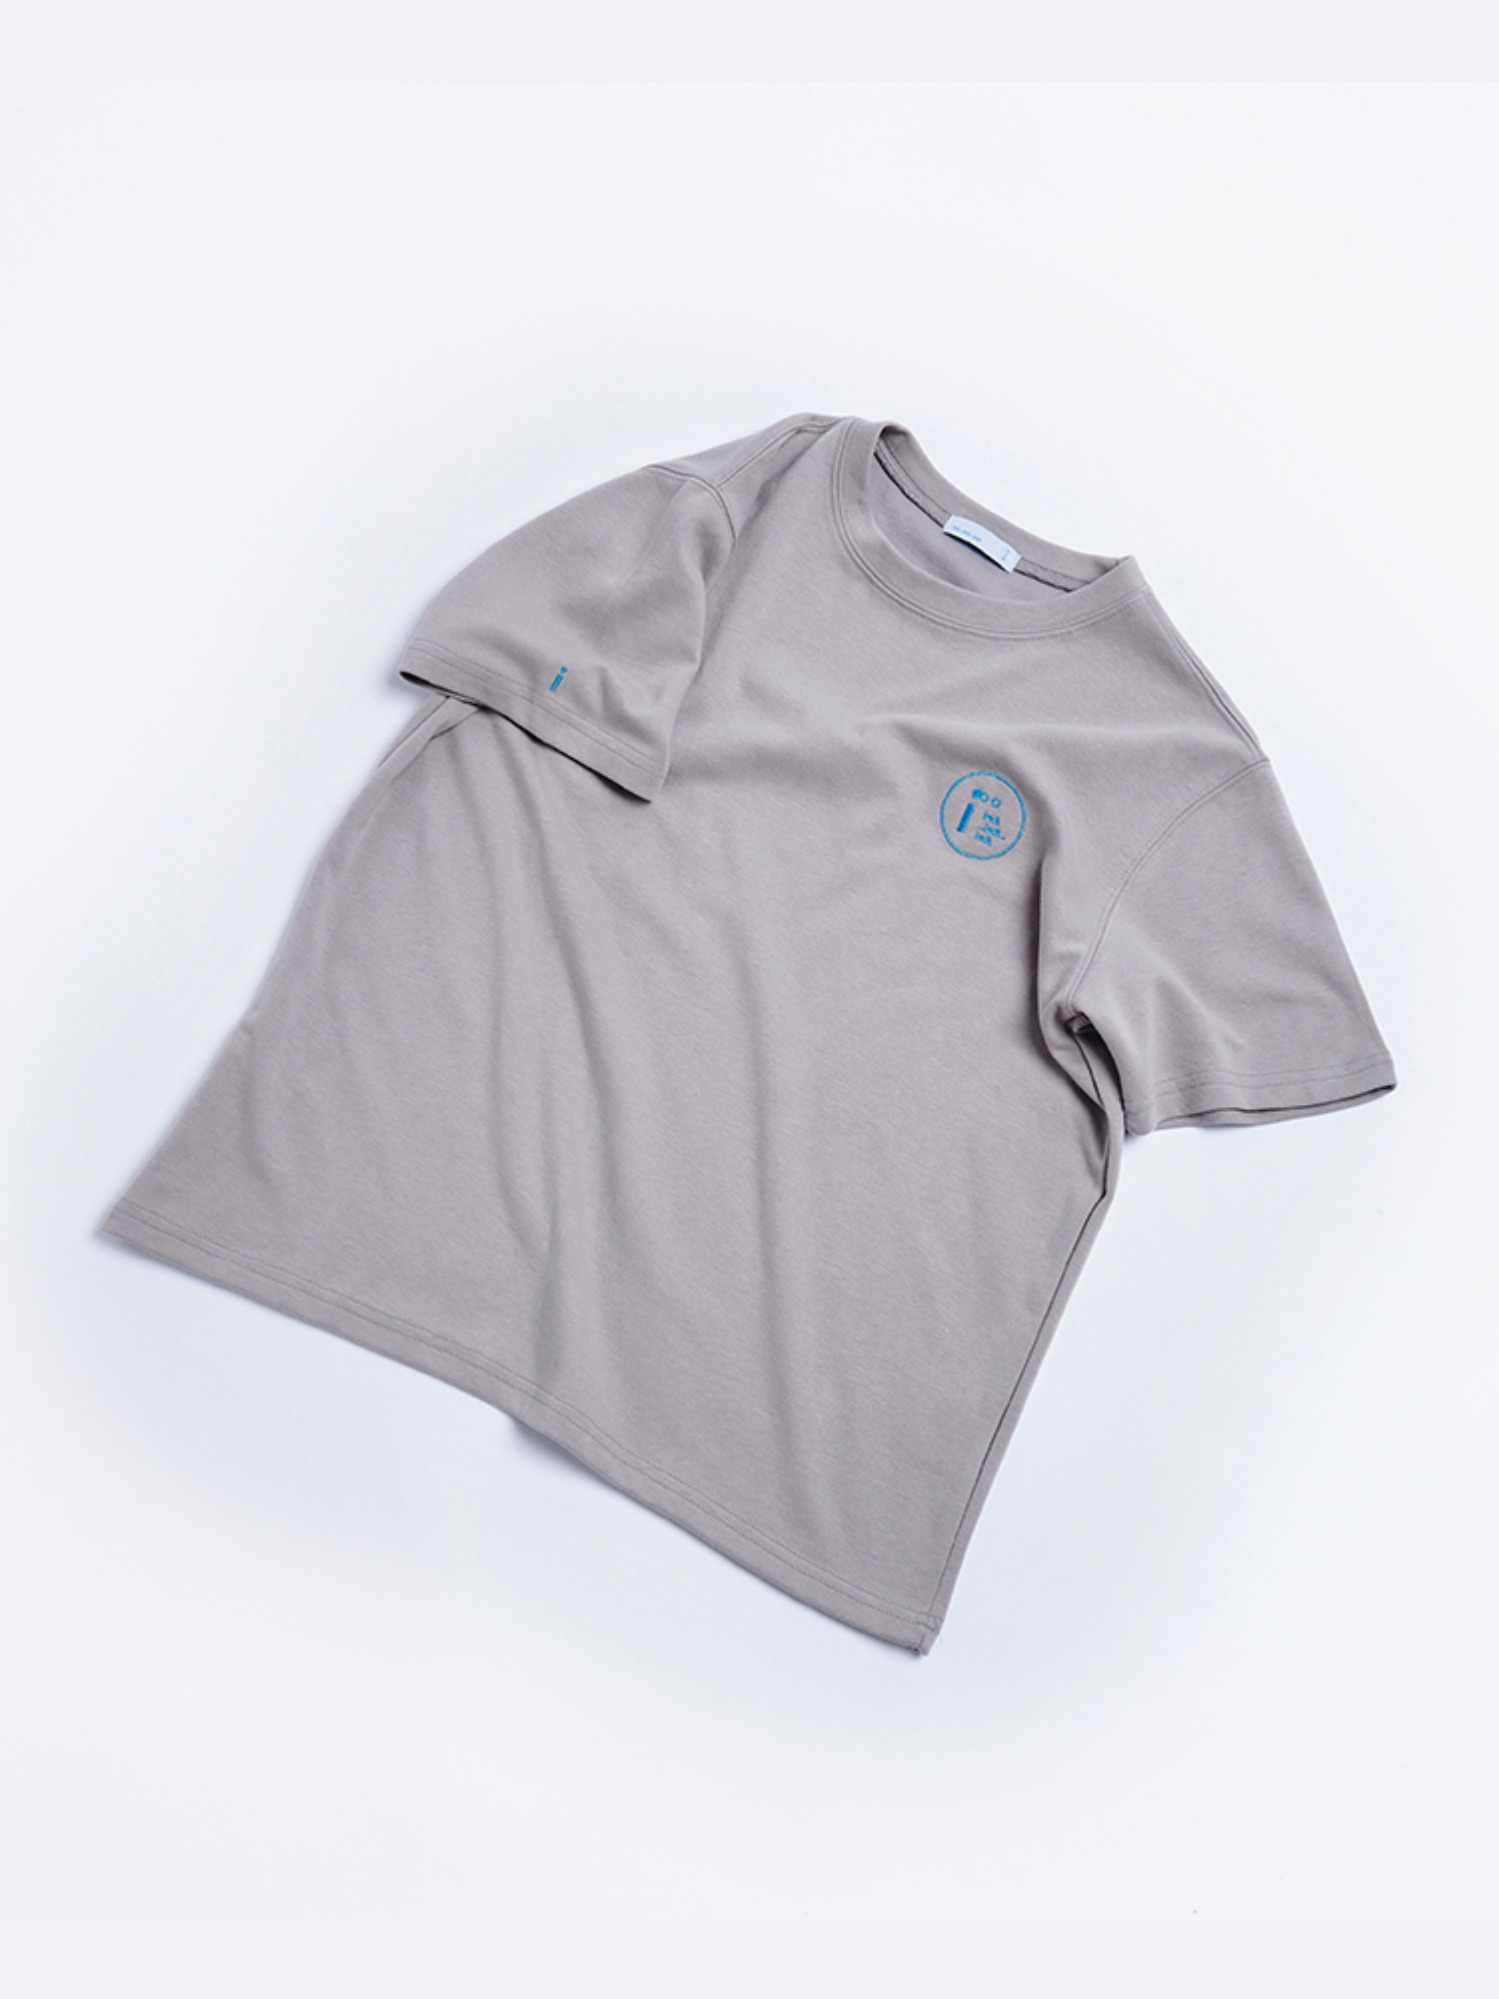 [SEASON OFF] Stitch inch T shirt (Cool Gray)